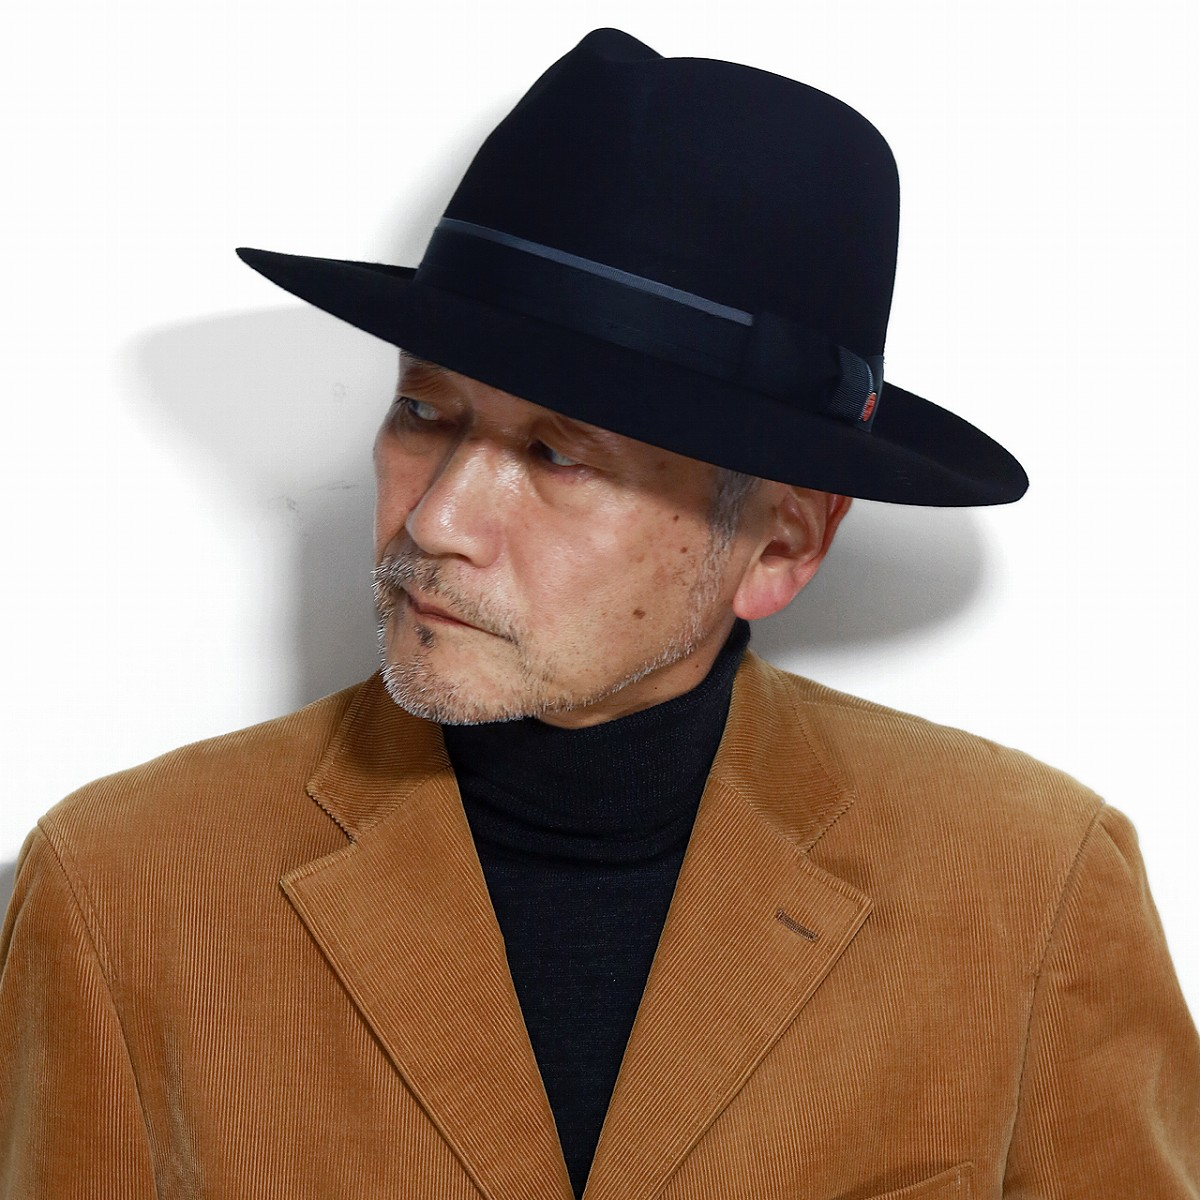 ELEHELM HAT STORE  Felt hat high quality beaver fur felt mayser soft felt hat  hat felt men thunk pull plain fabric マイザー hat big size 62cm trilby hat ... 89323e668be